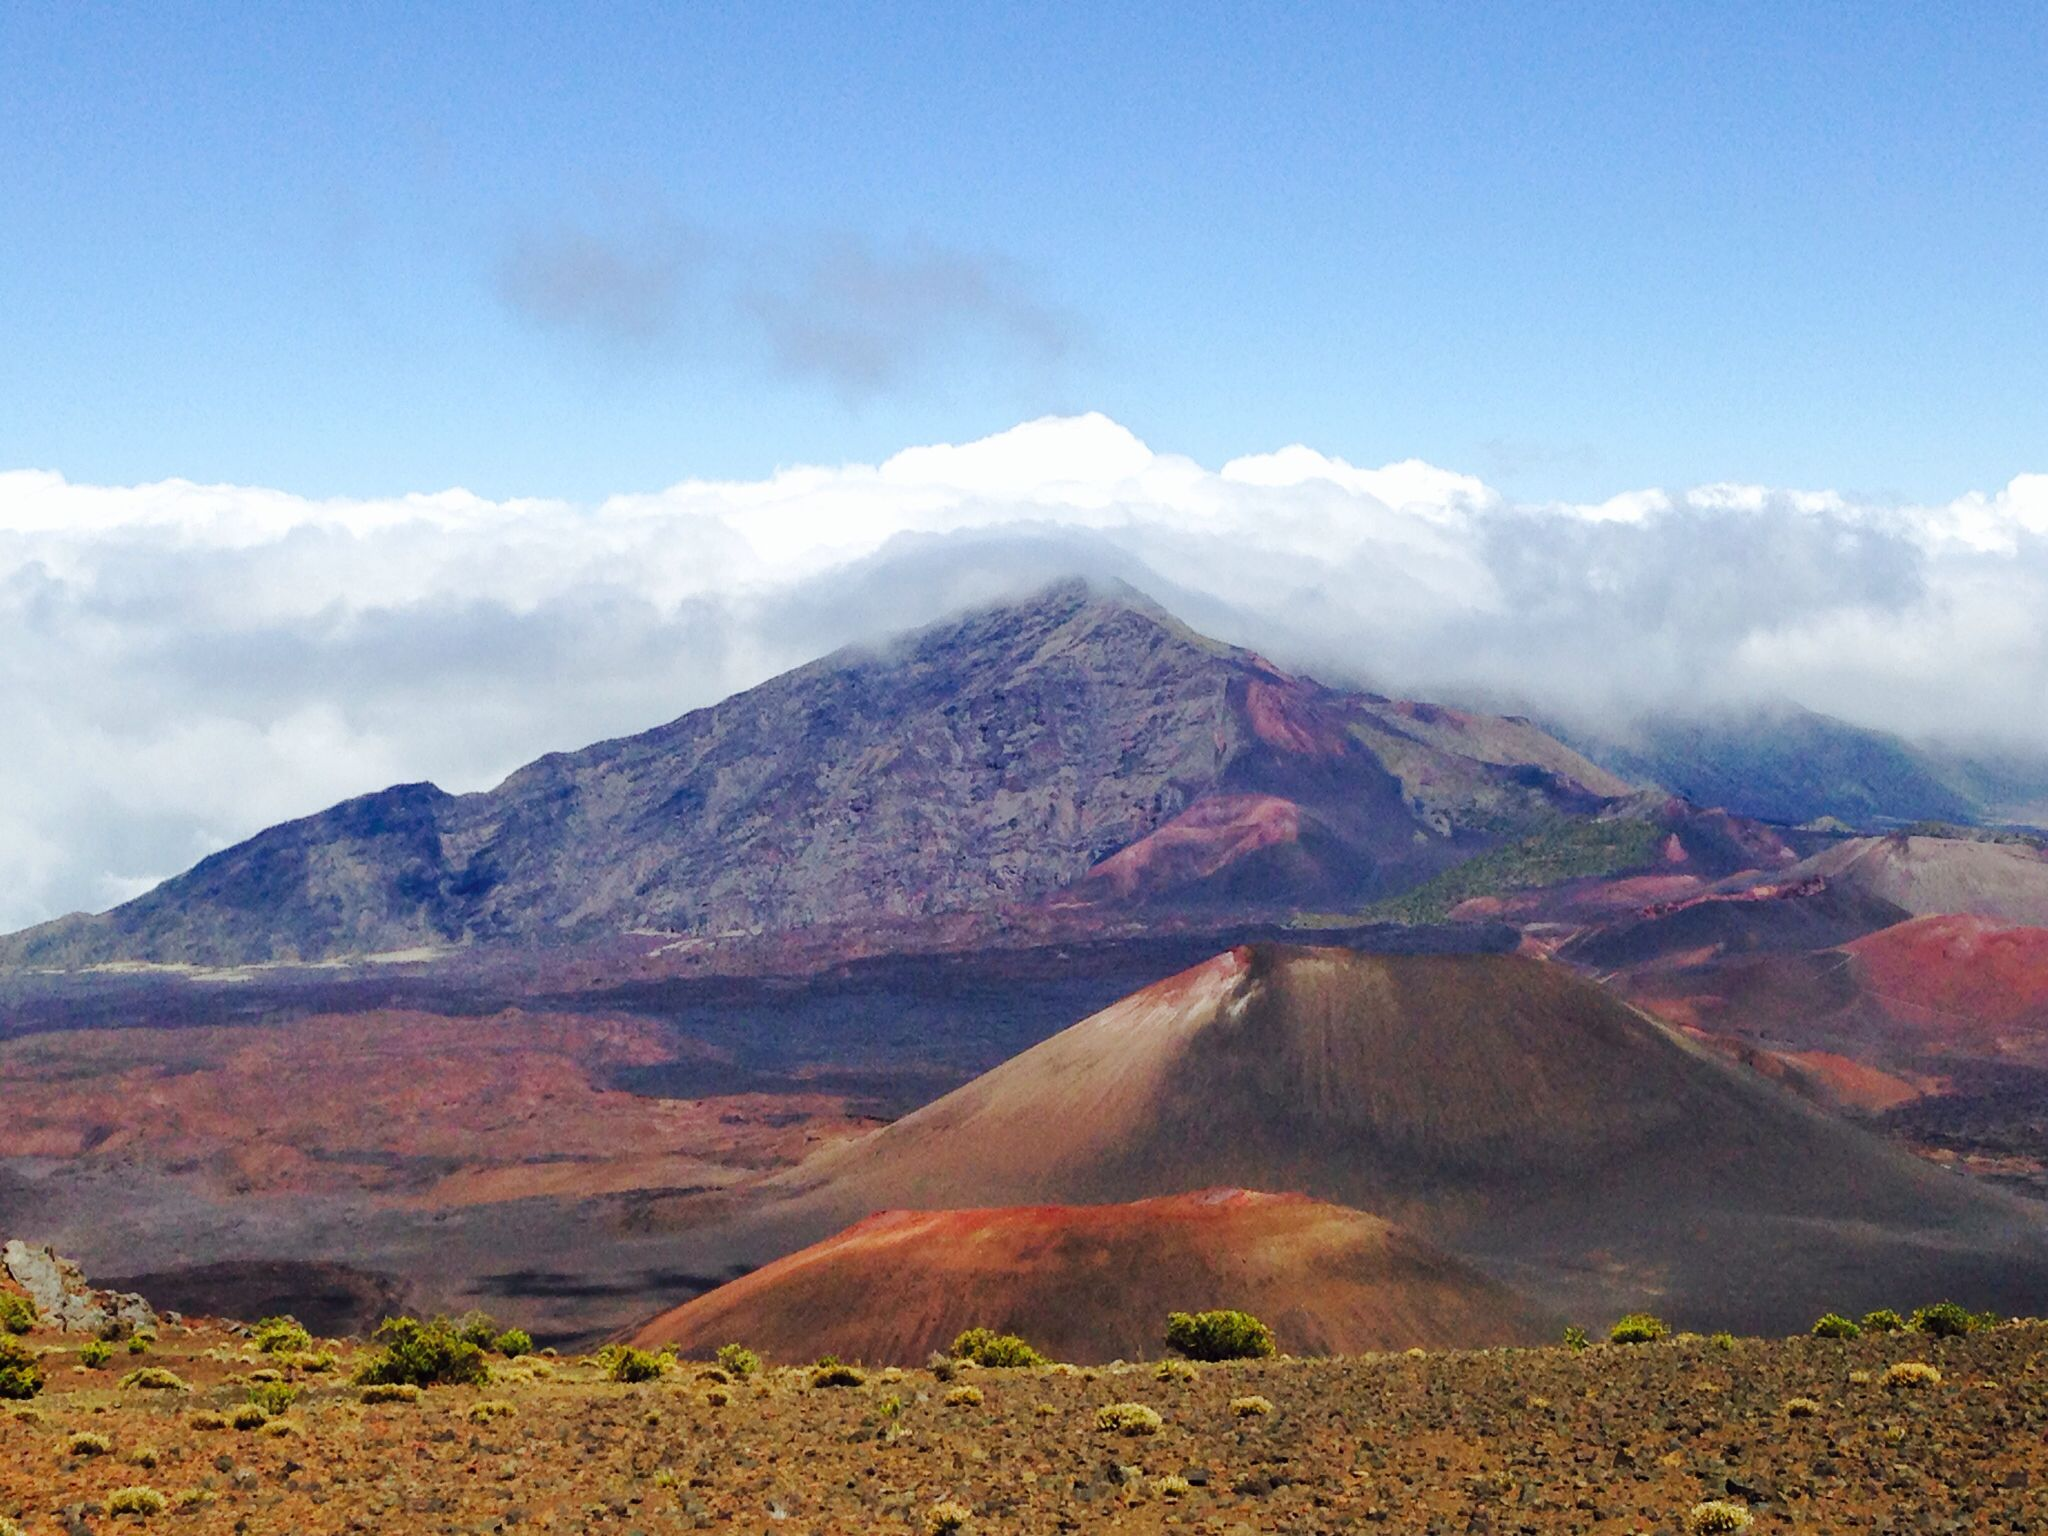 Haleakala National Park. Maui. - 2474.8KB